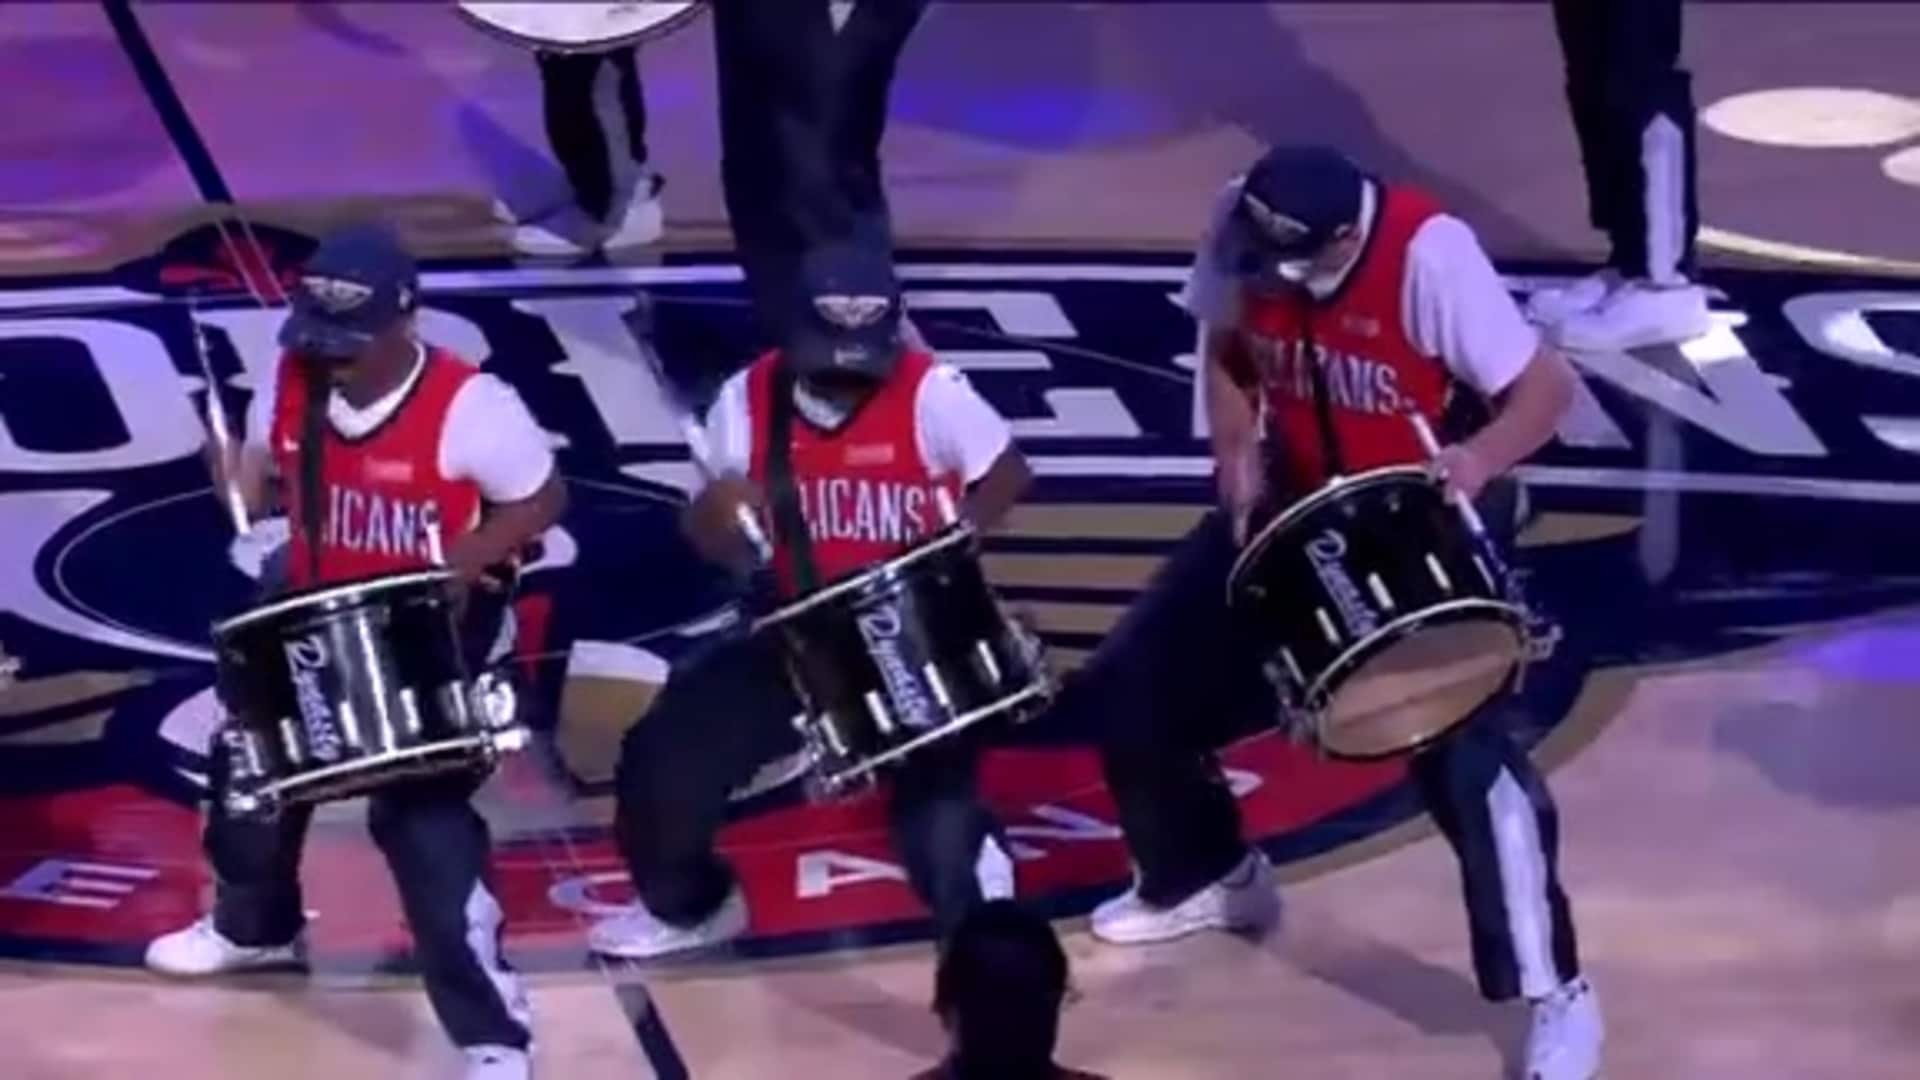 Entertainment: Pelicans Drum Line 1st Quarter Performance - October 25, 2019 vs Mavericks